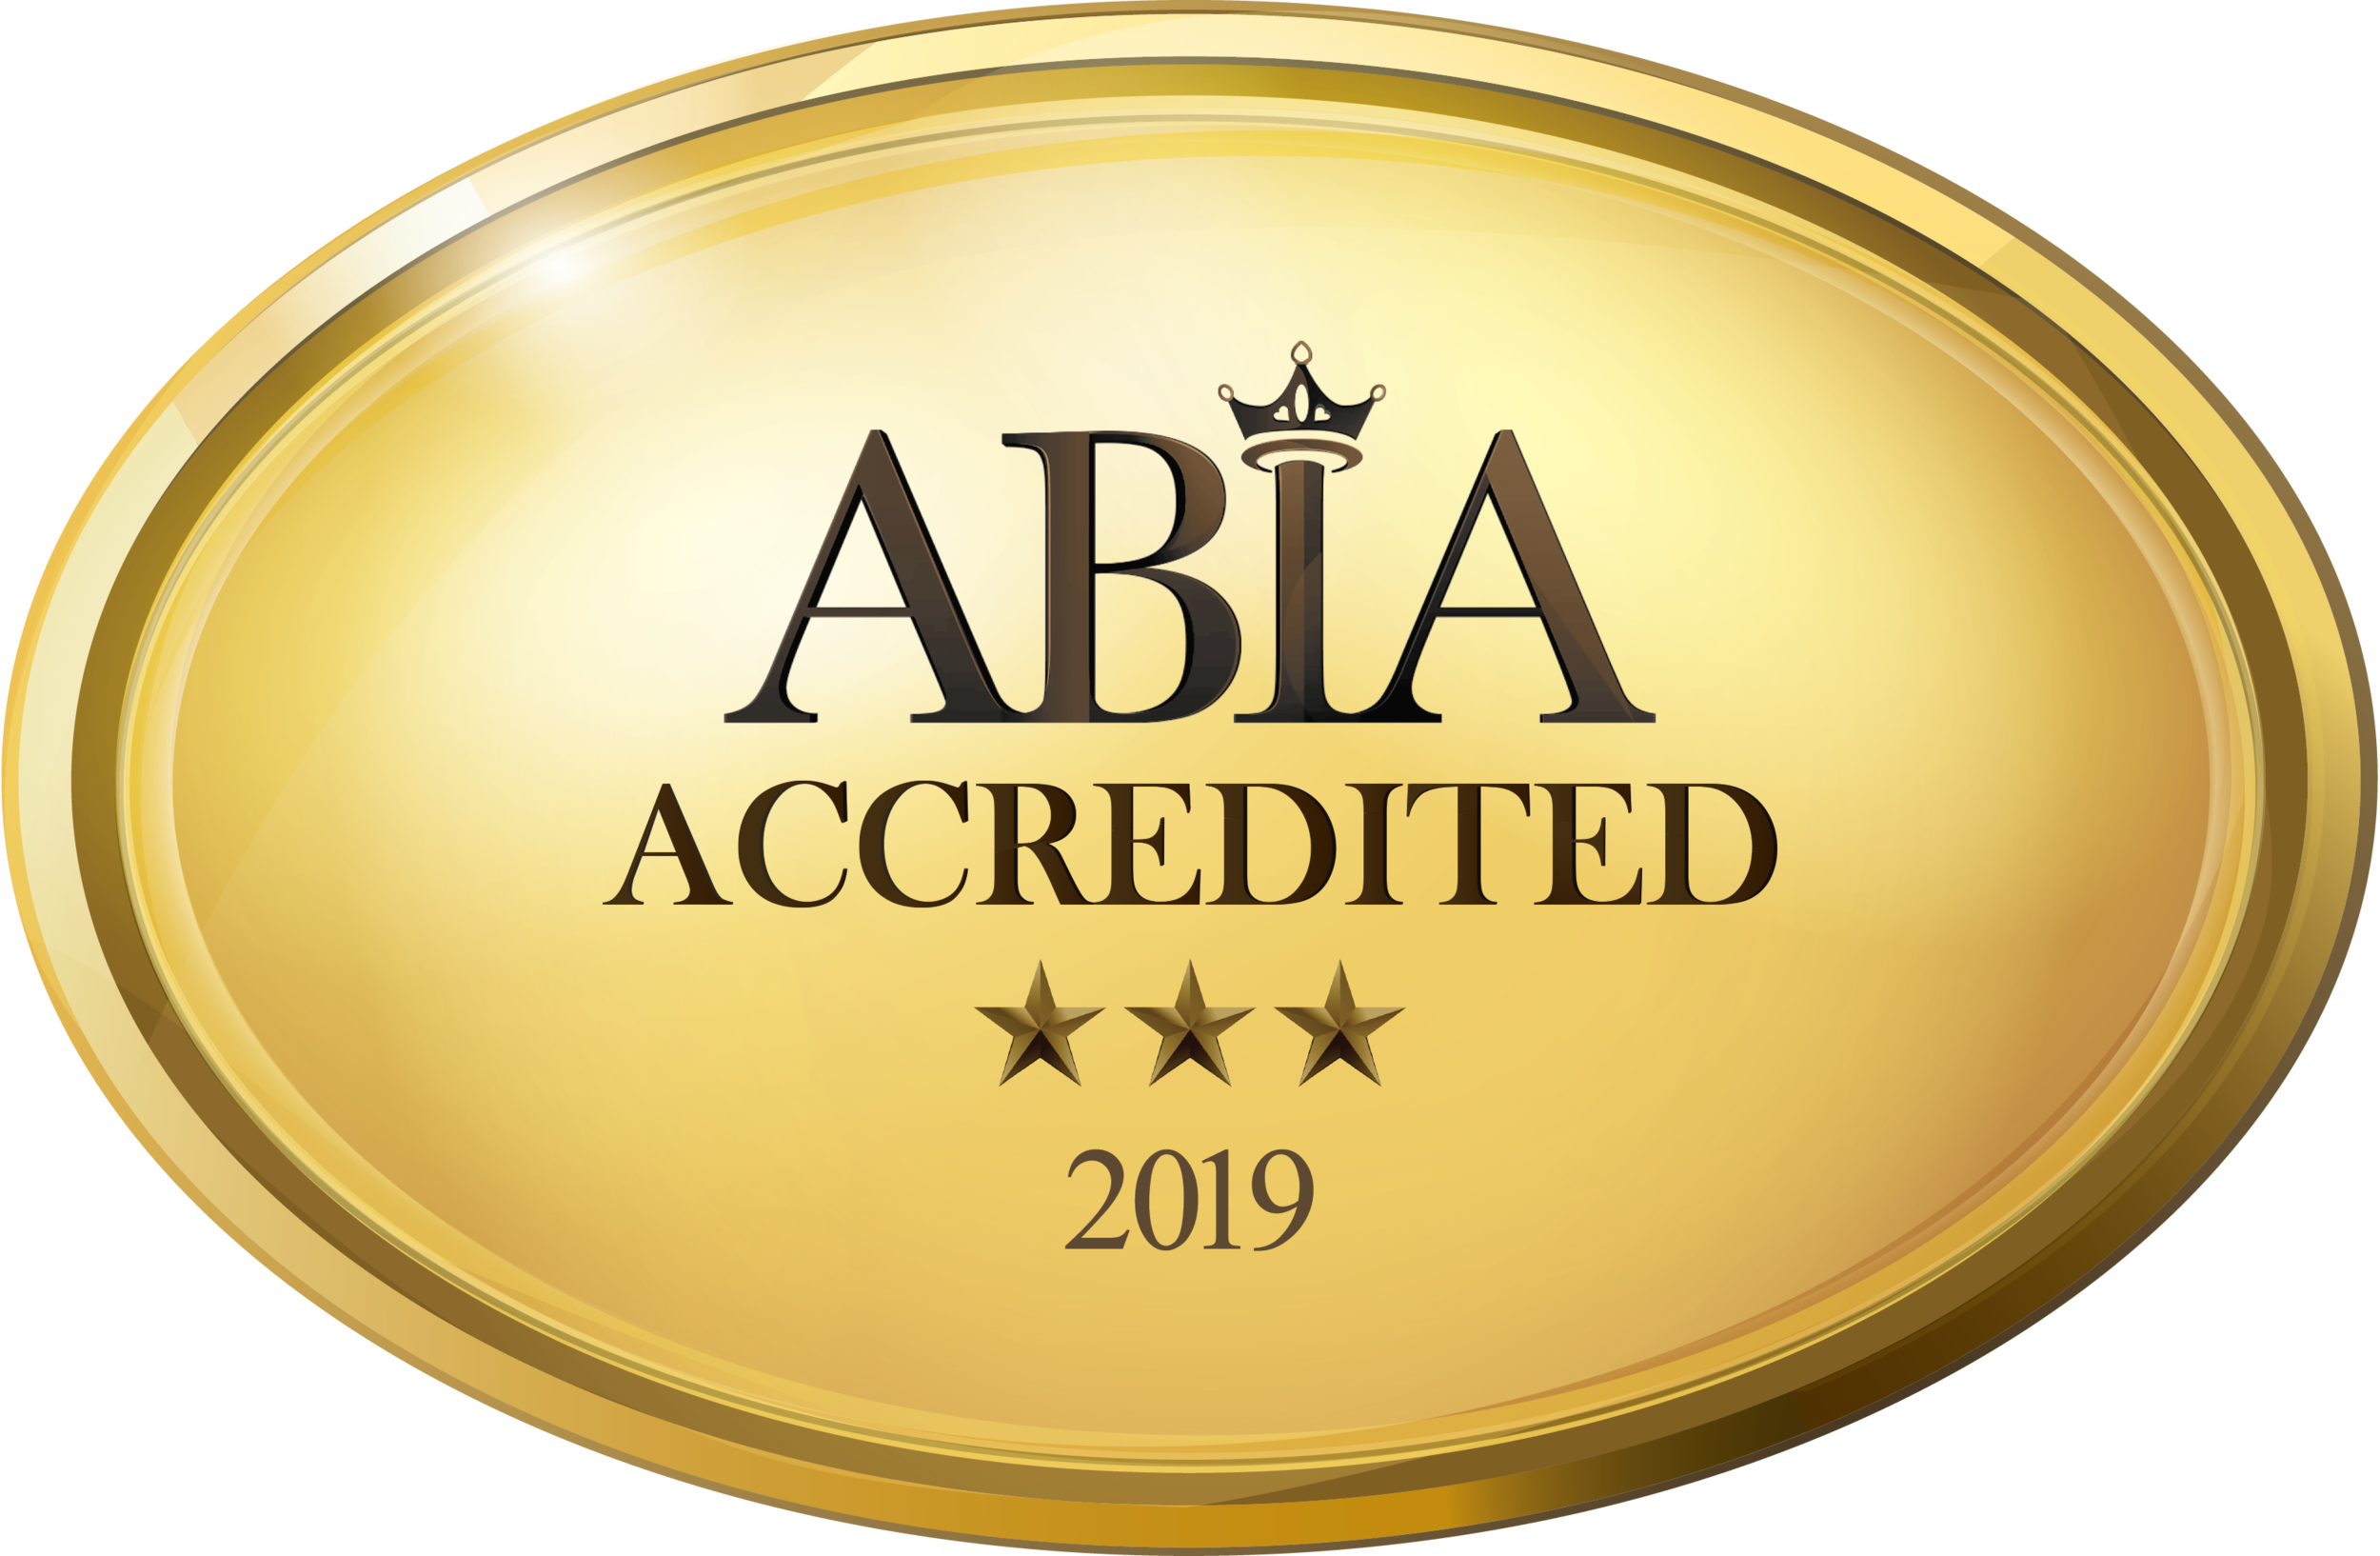 abia-accredited-member-2019-49.png